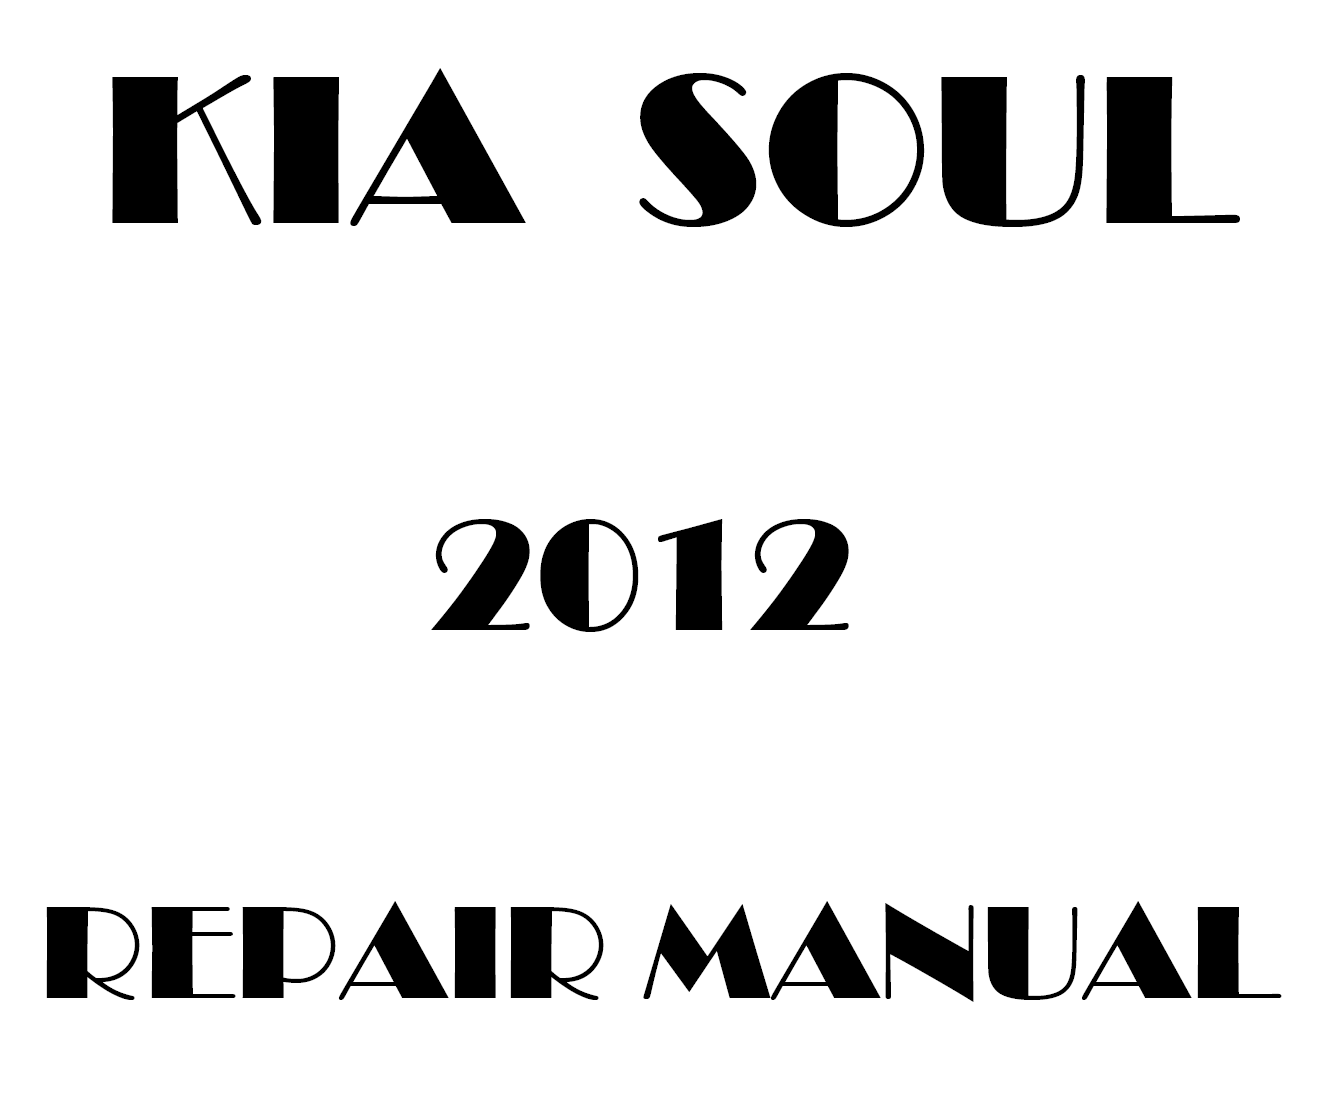 2012 Kia Soul repair manual